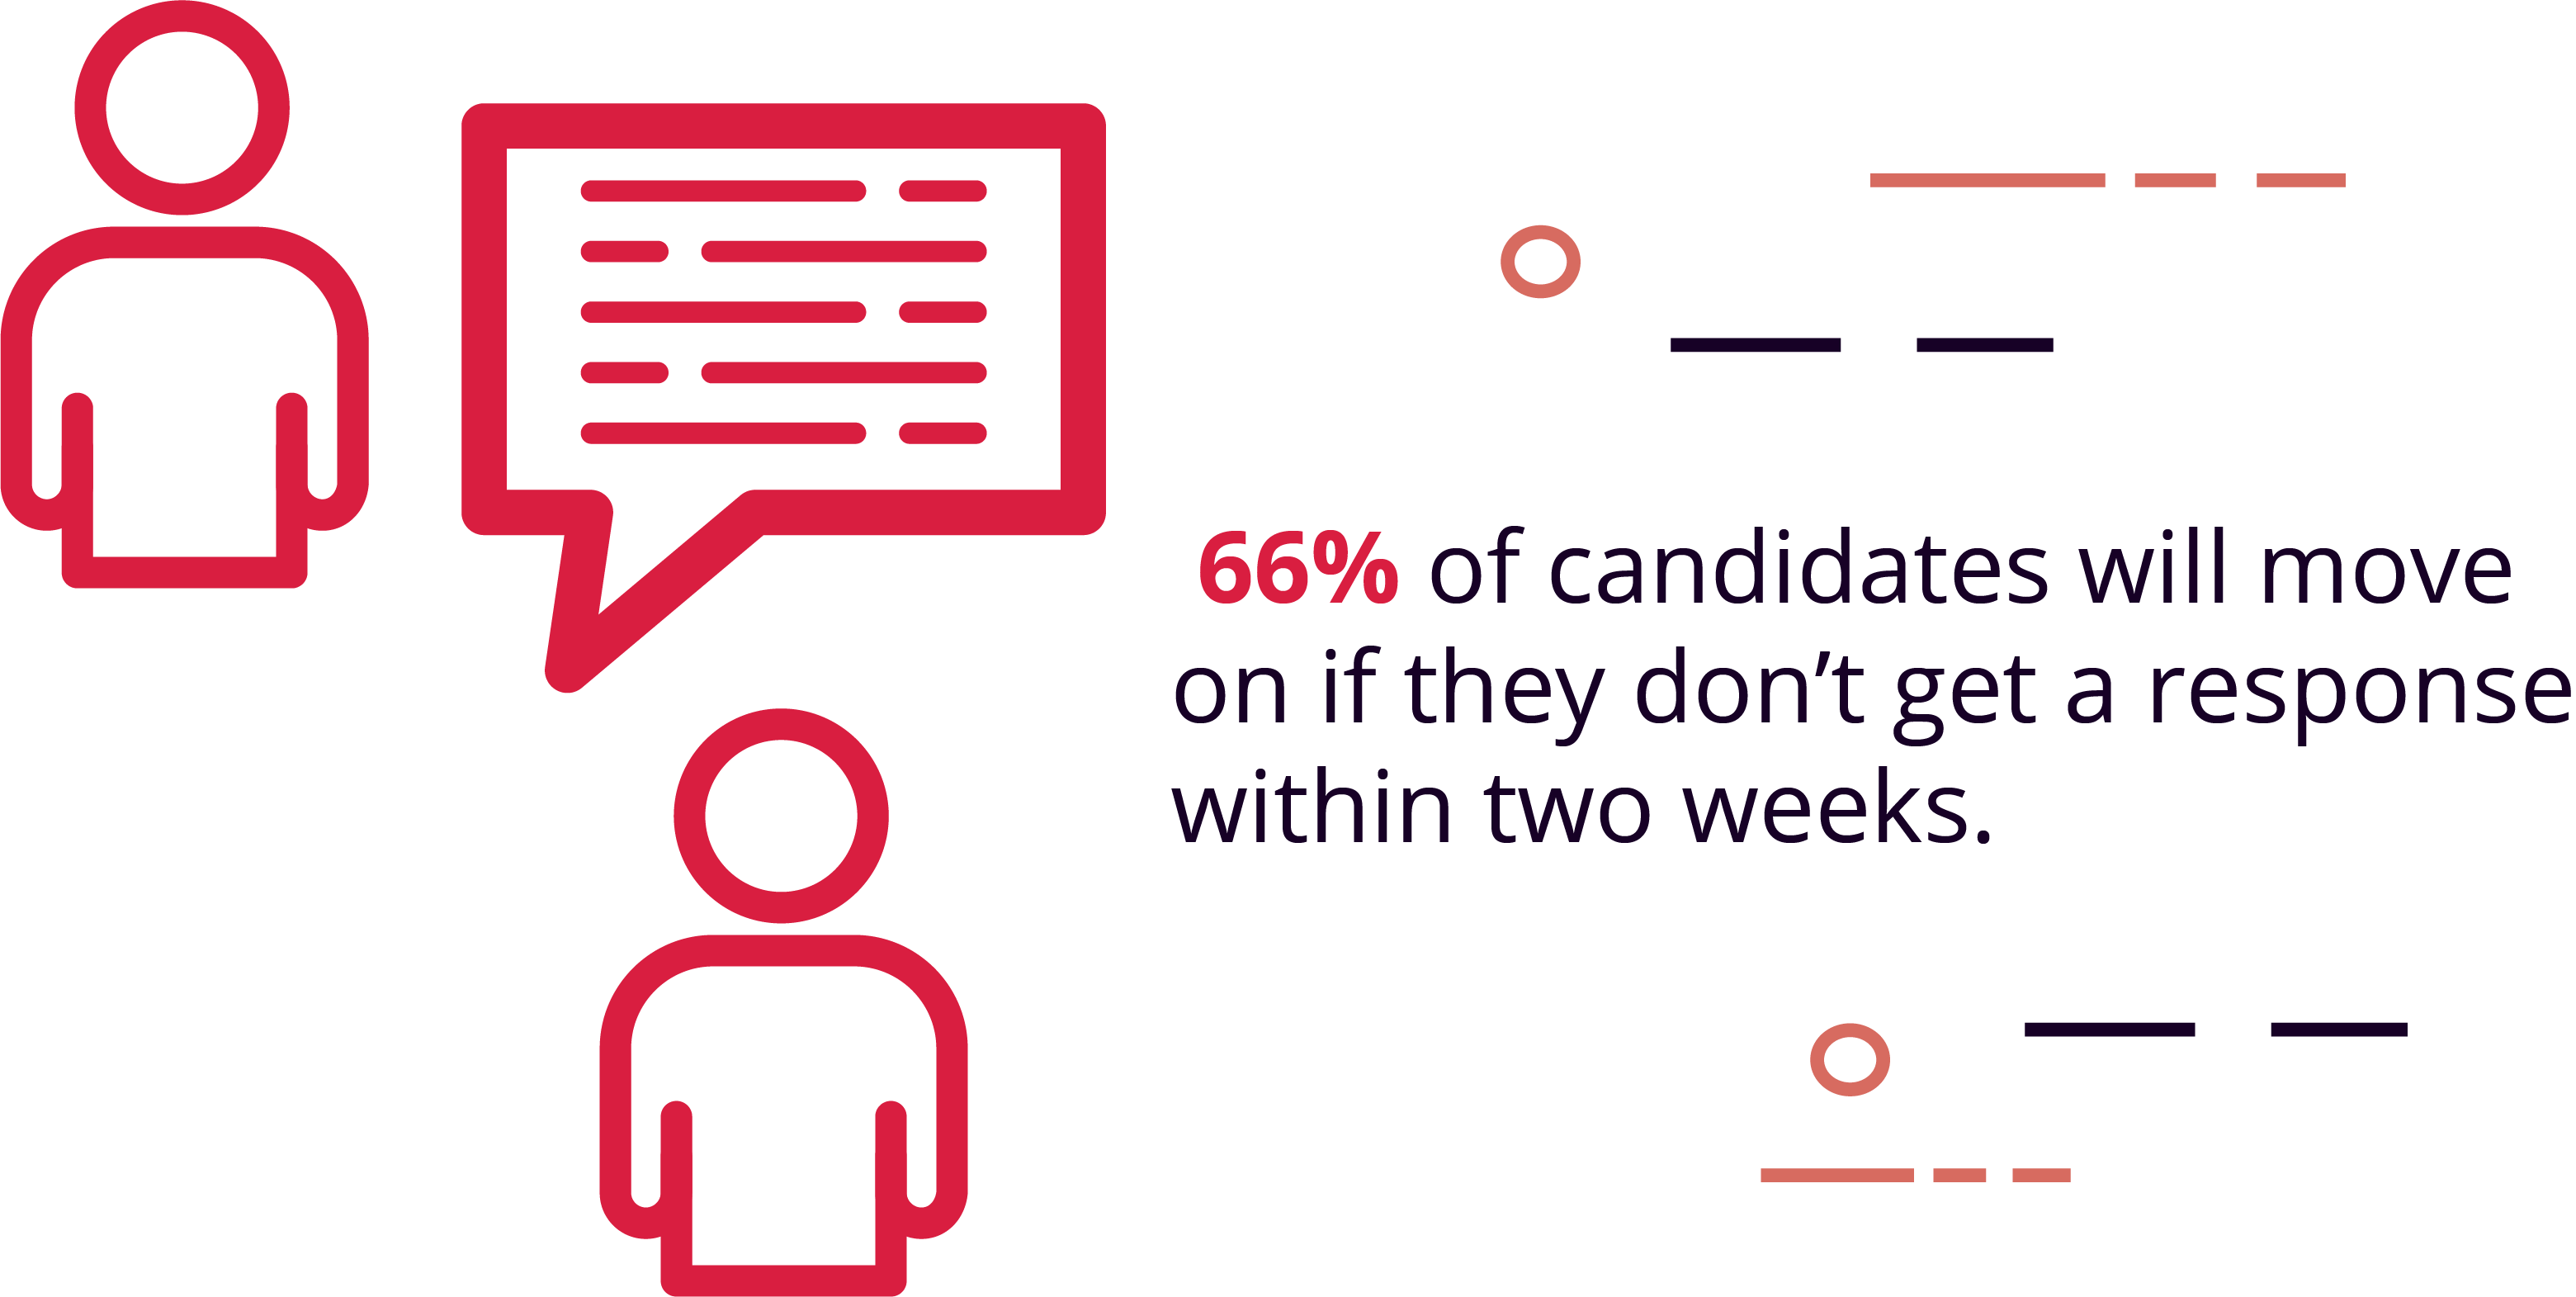 66% of candidates will move on if they don't hear a response within 2 weeks